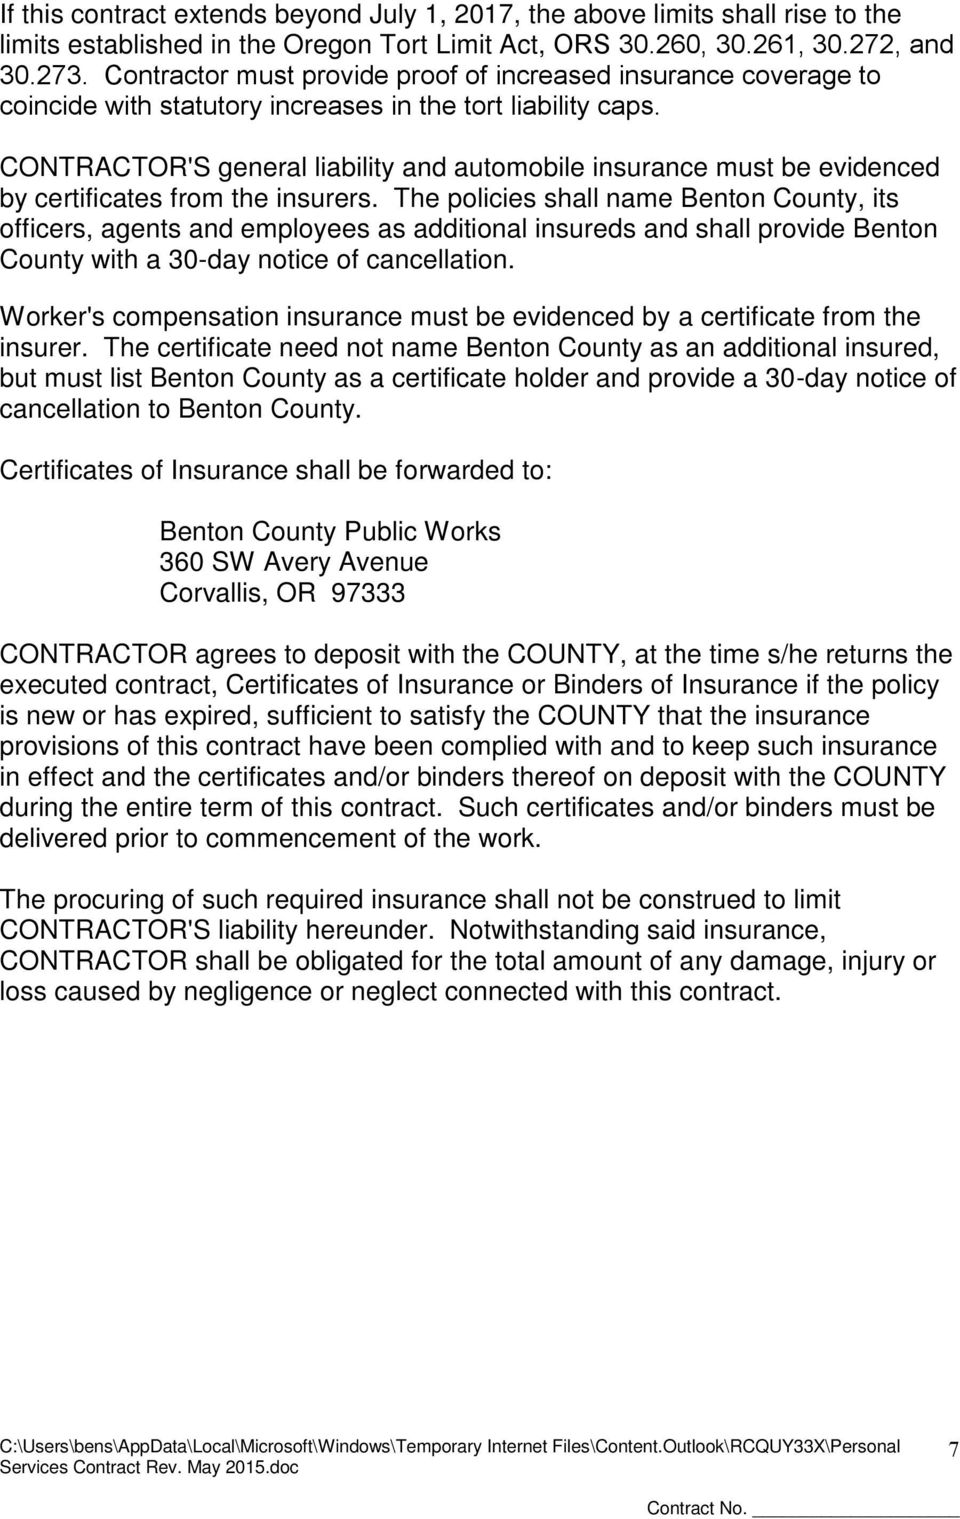 CONTRACTOR'S general liability and automobile insurance must be evidenced by certificates from the insurers.